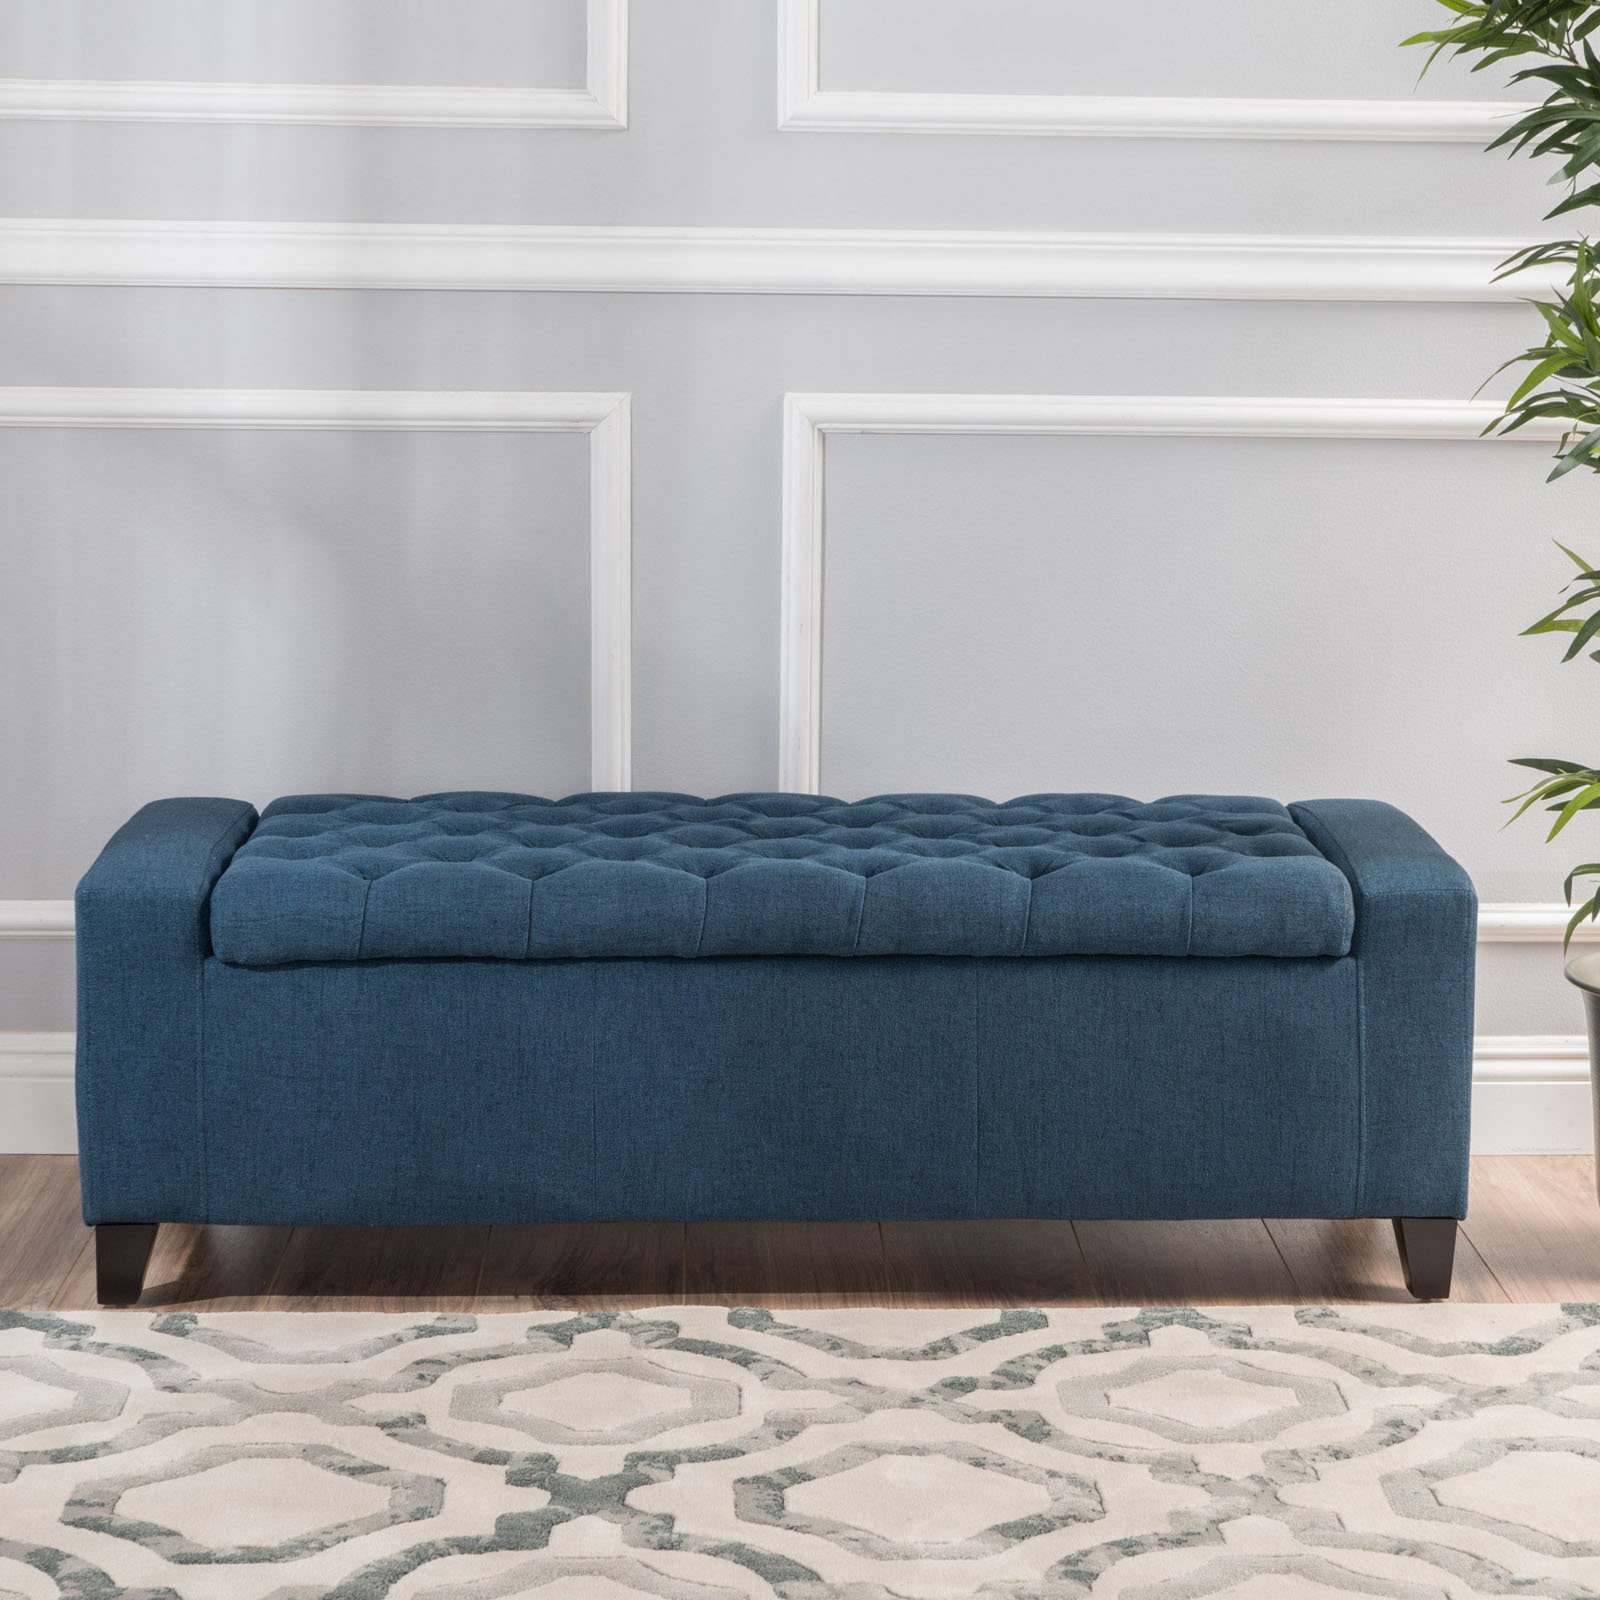 Outstanding Clarke Fabric Storage Indoor Bench Dark Blue Products In Caraccident5 Cool Chair Designs And Ideas Caraccident5Info